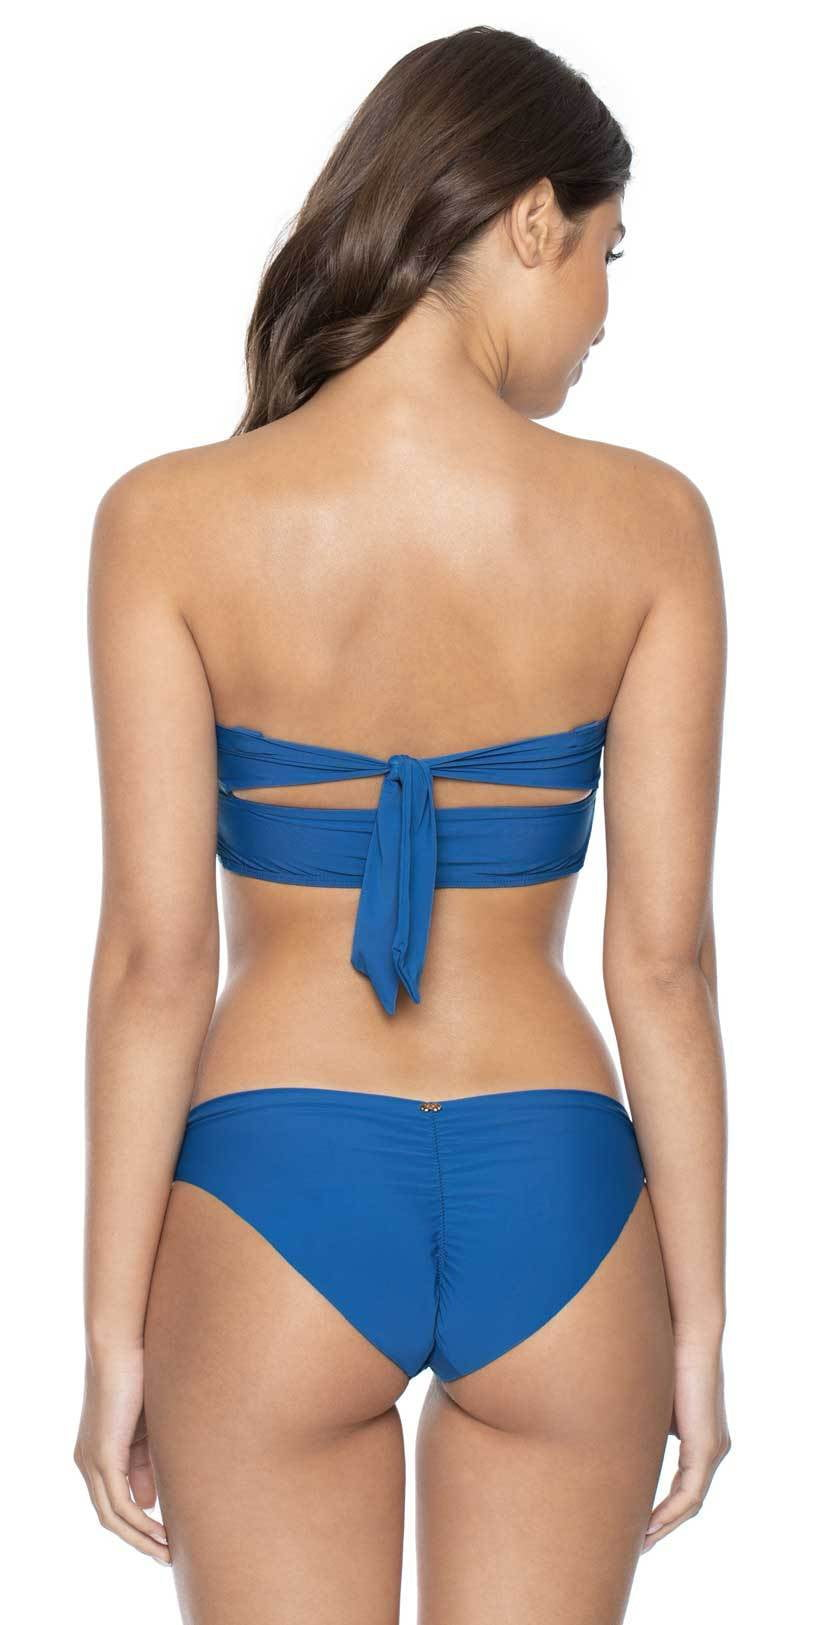 PilyQ Island Blue Basic Ruched Full Cut Bikini Bottom: